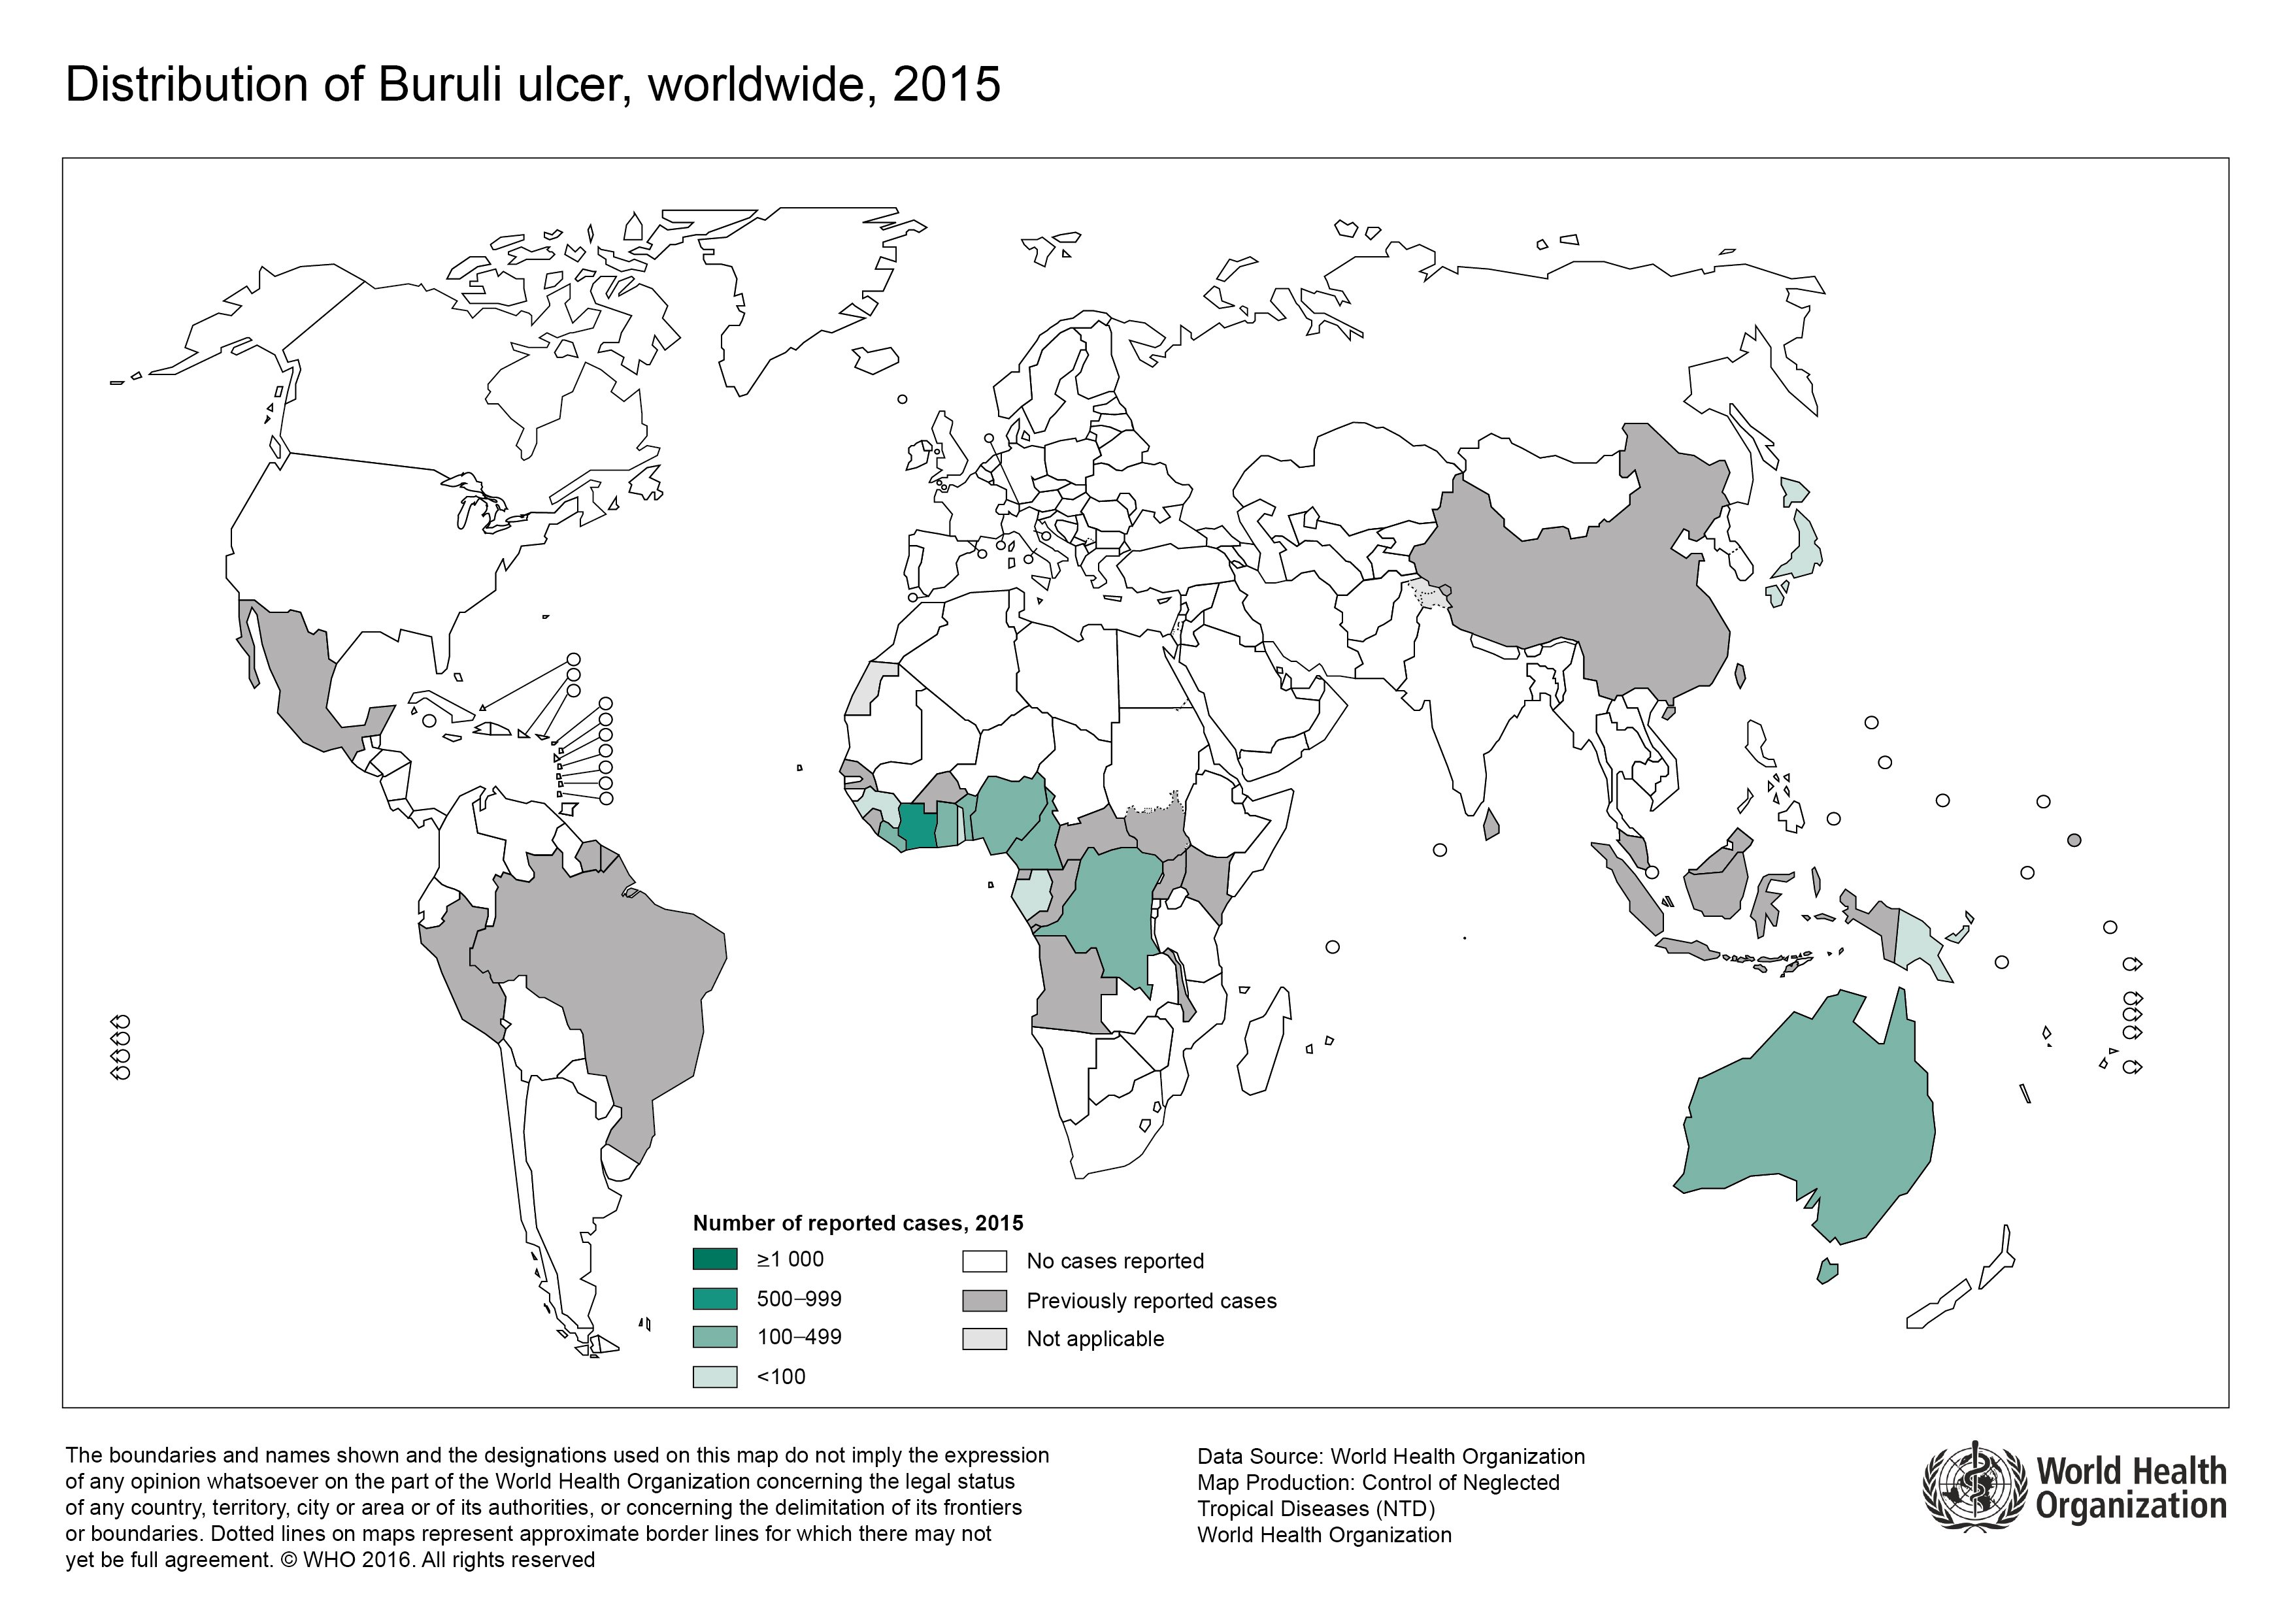 Buruli ulcer distribution in 2015 (WHO)